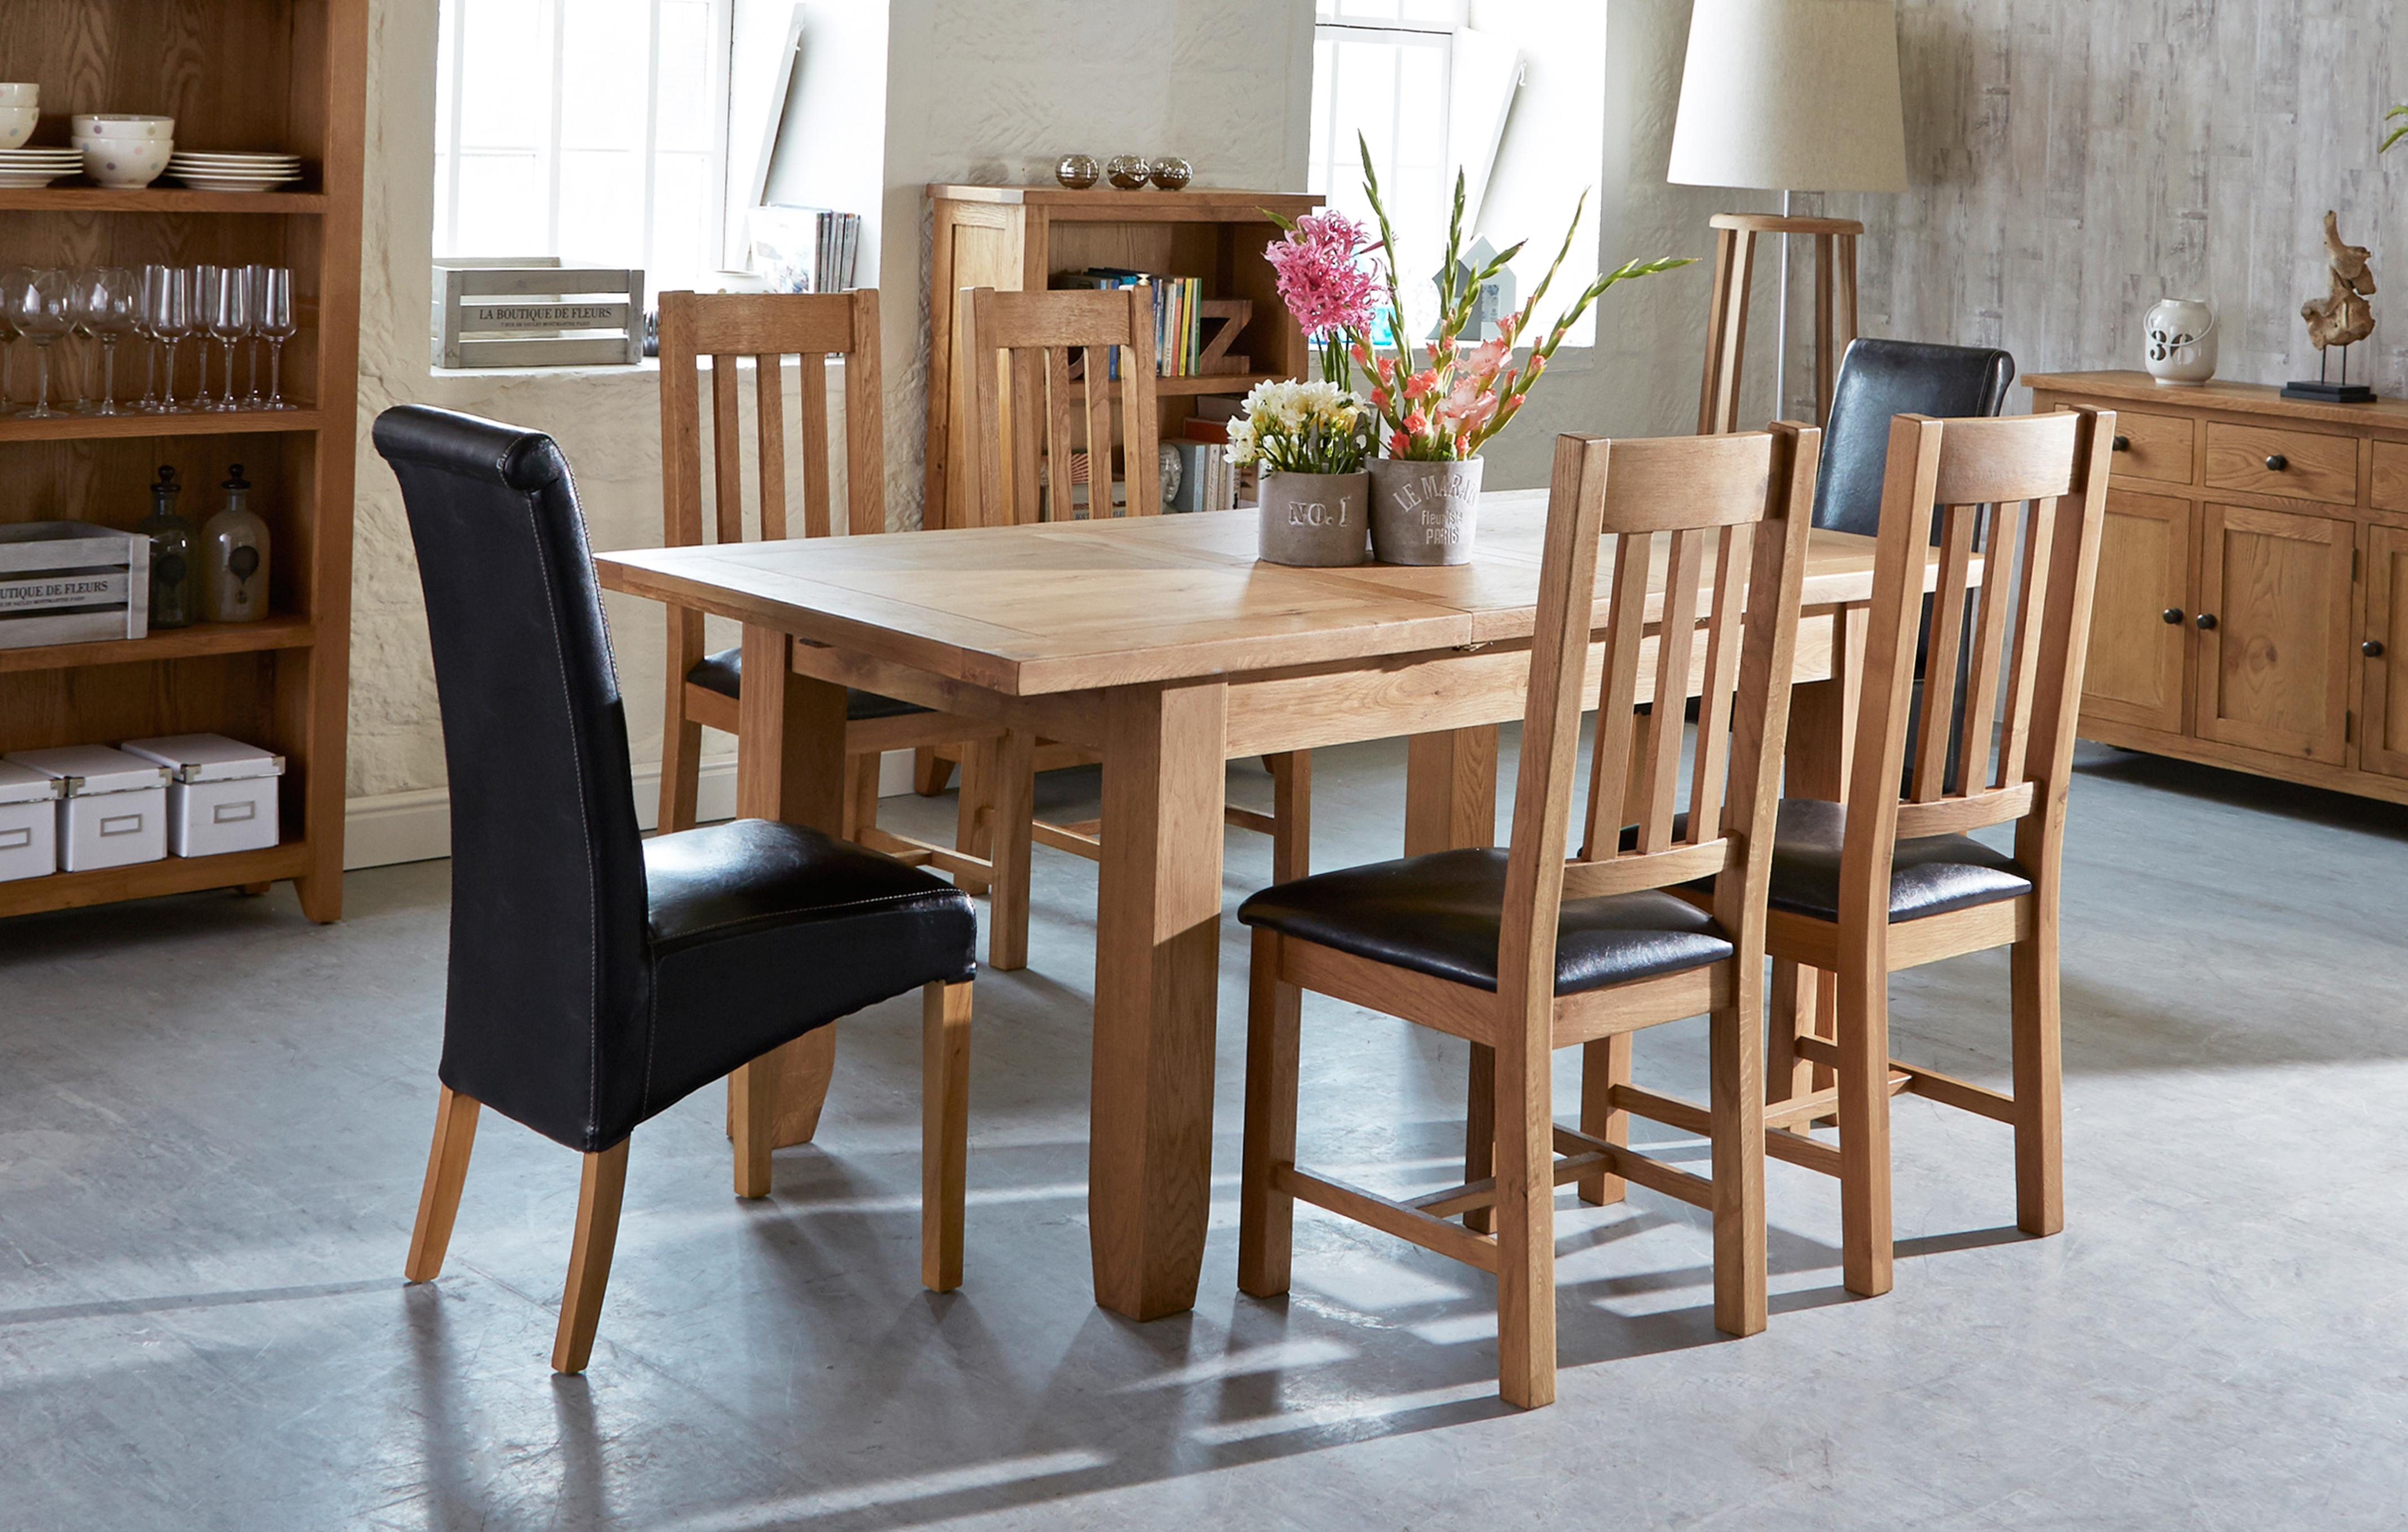 Dining Tables And ChairsSee All Our Sets Tables And ChairsDFS